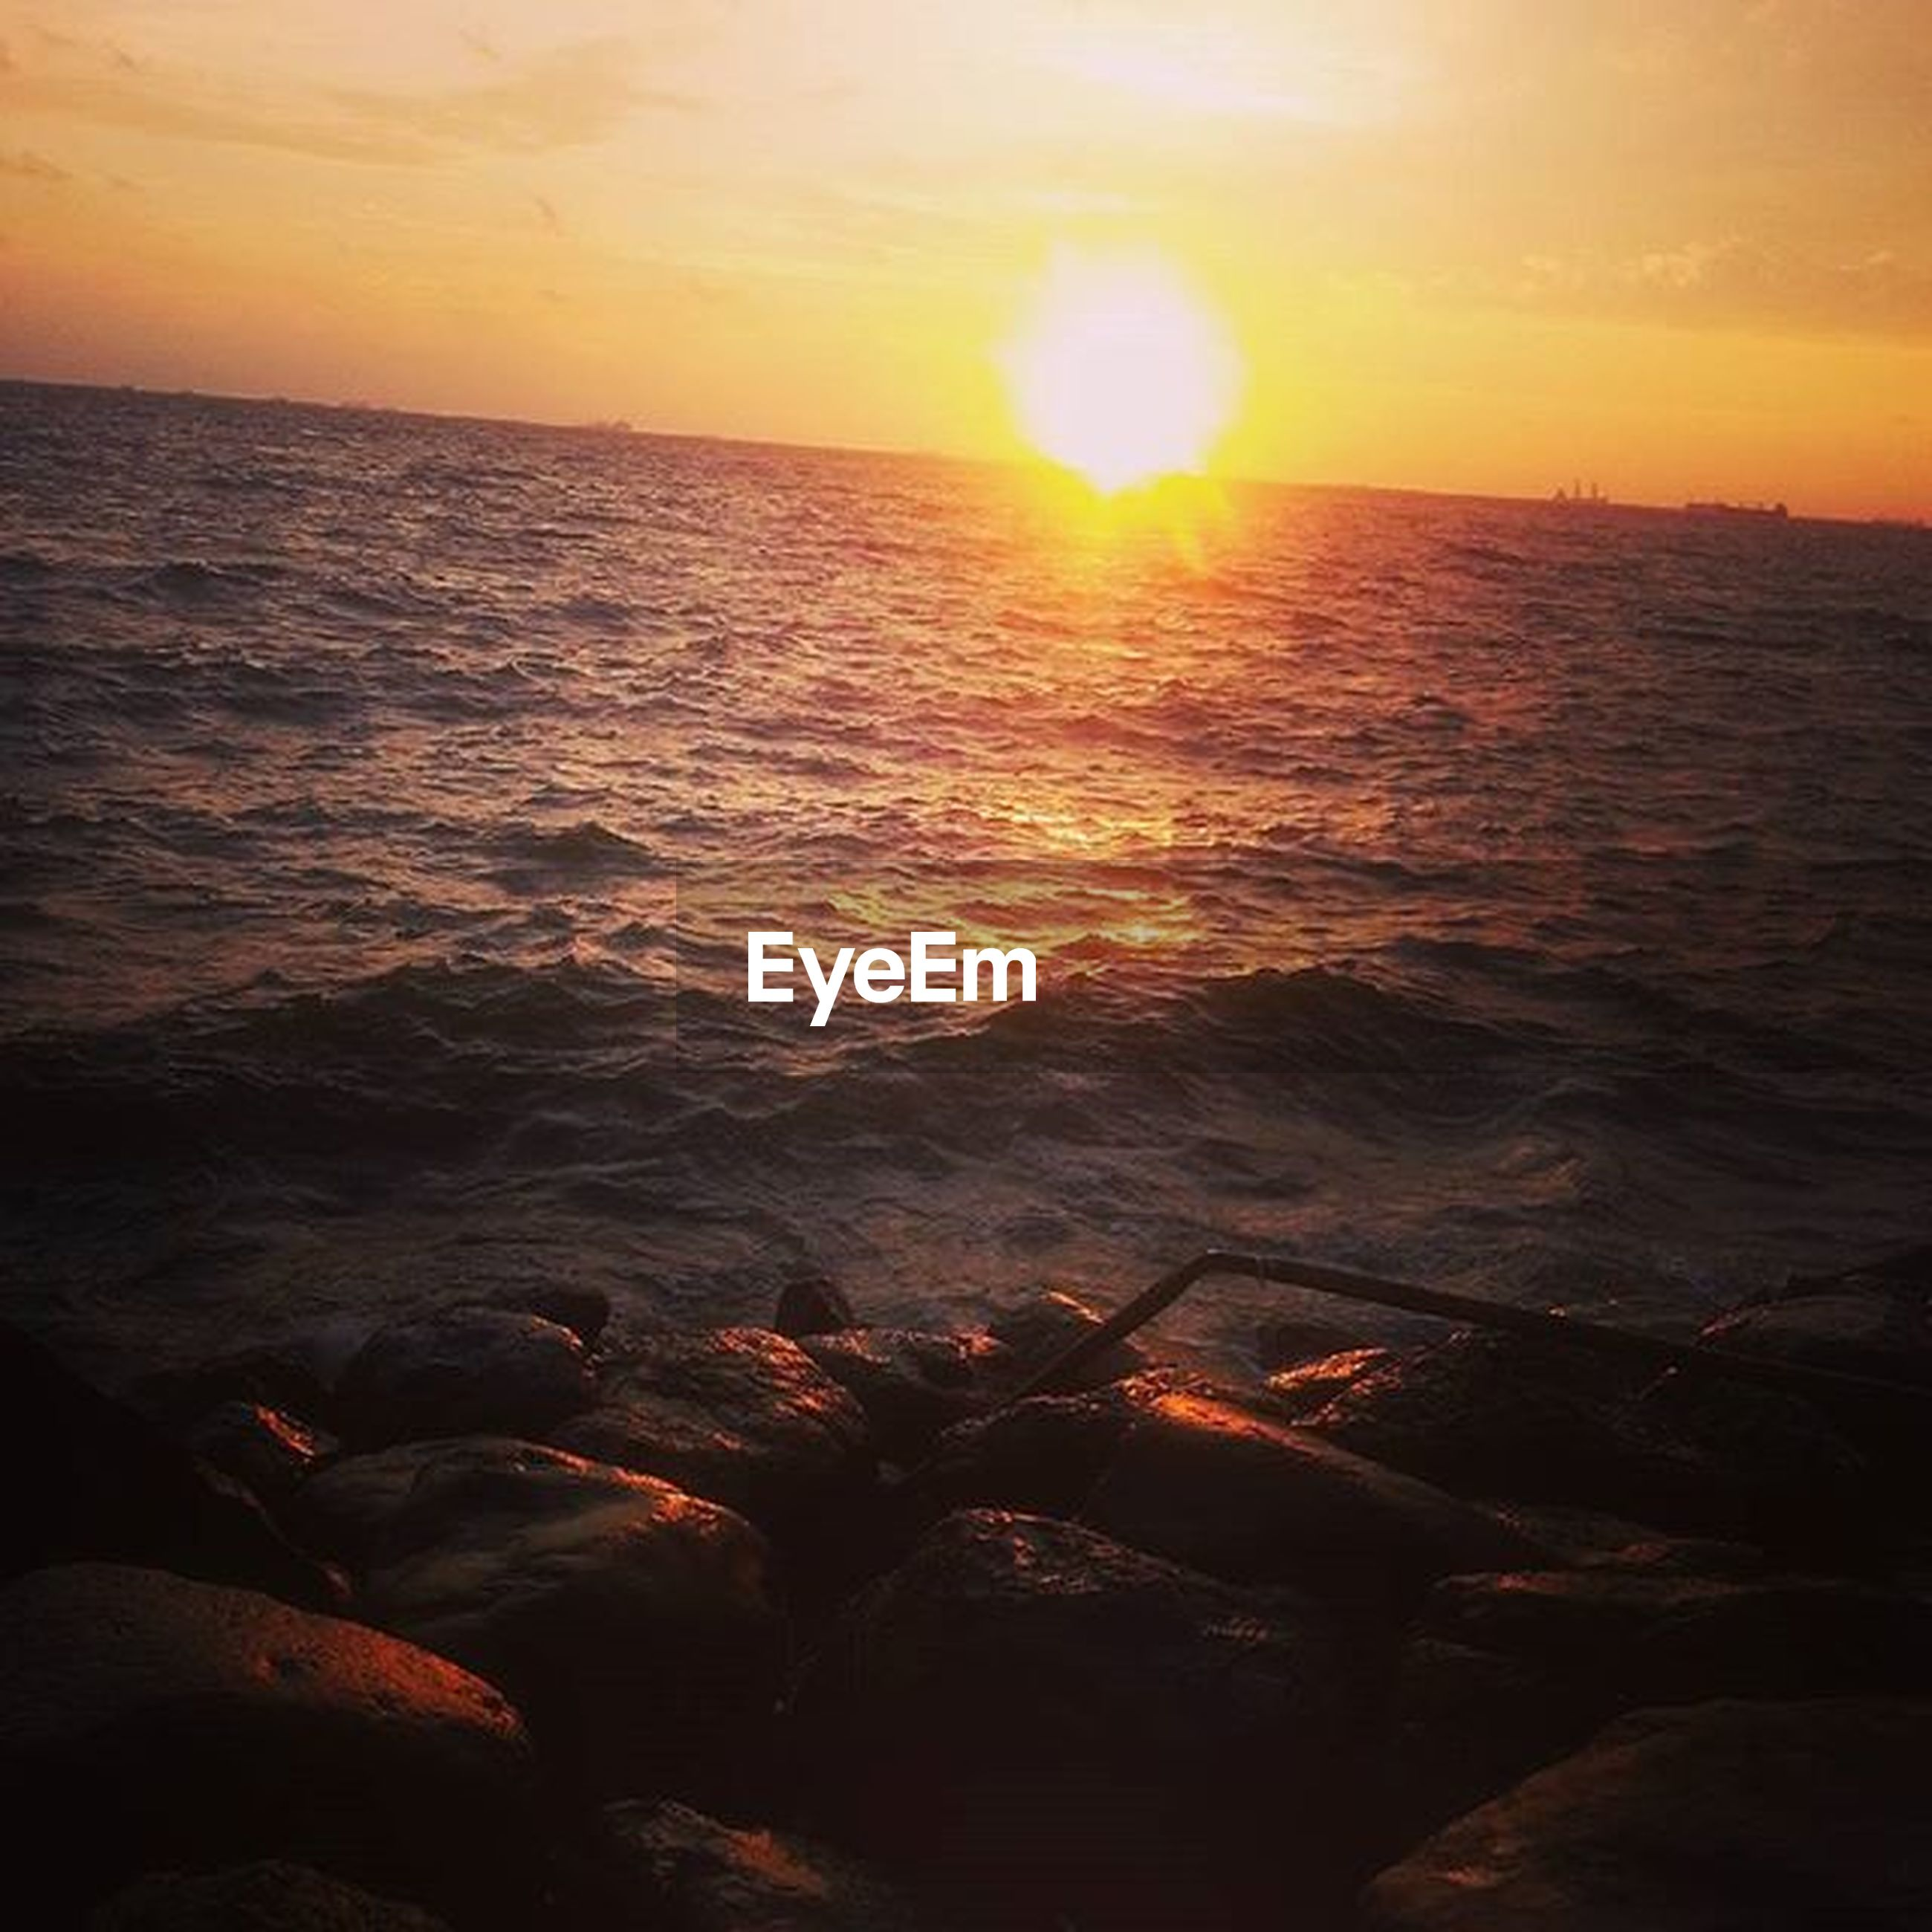 sea, sunset, water, sun, horizon over water, scenics, tranquil scene, beauty in nature, tranquility, sky, idyllic, nature, reflection, orange color, rippled, sunlight, beach, shore, seascape, rock - object